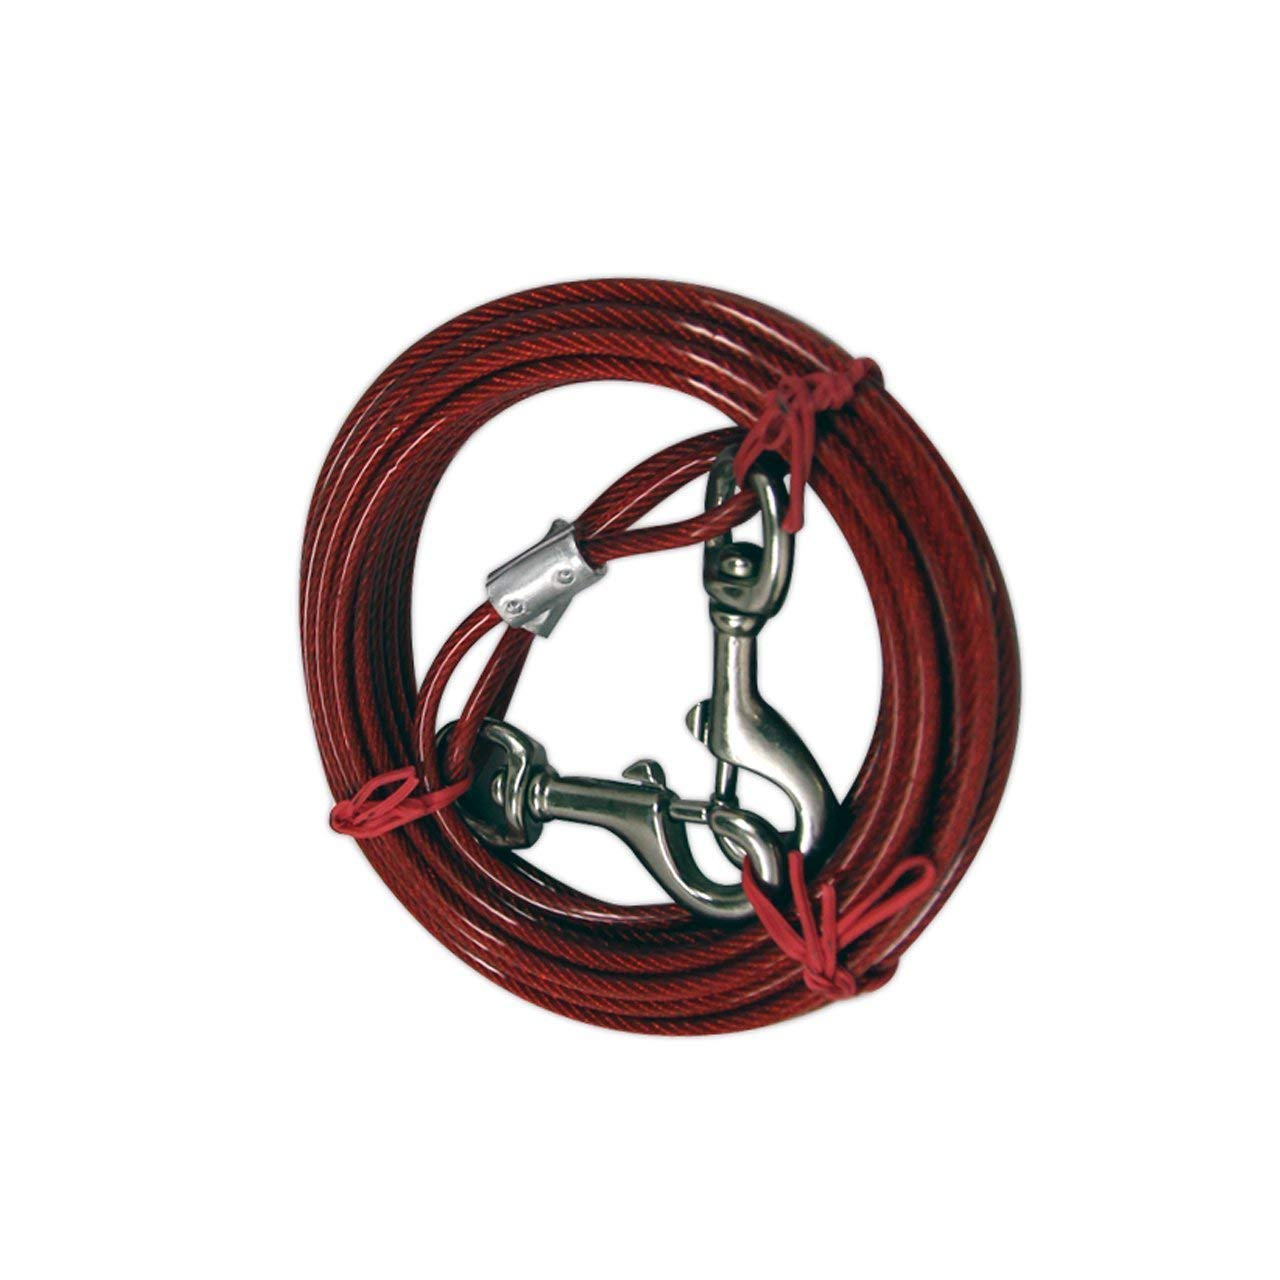 2 Pack IIT 99914 Dog Tie-Out Cable - 20 Feet by IIT